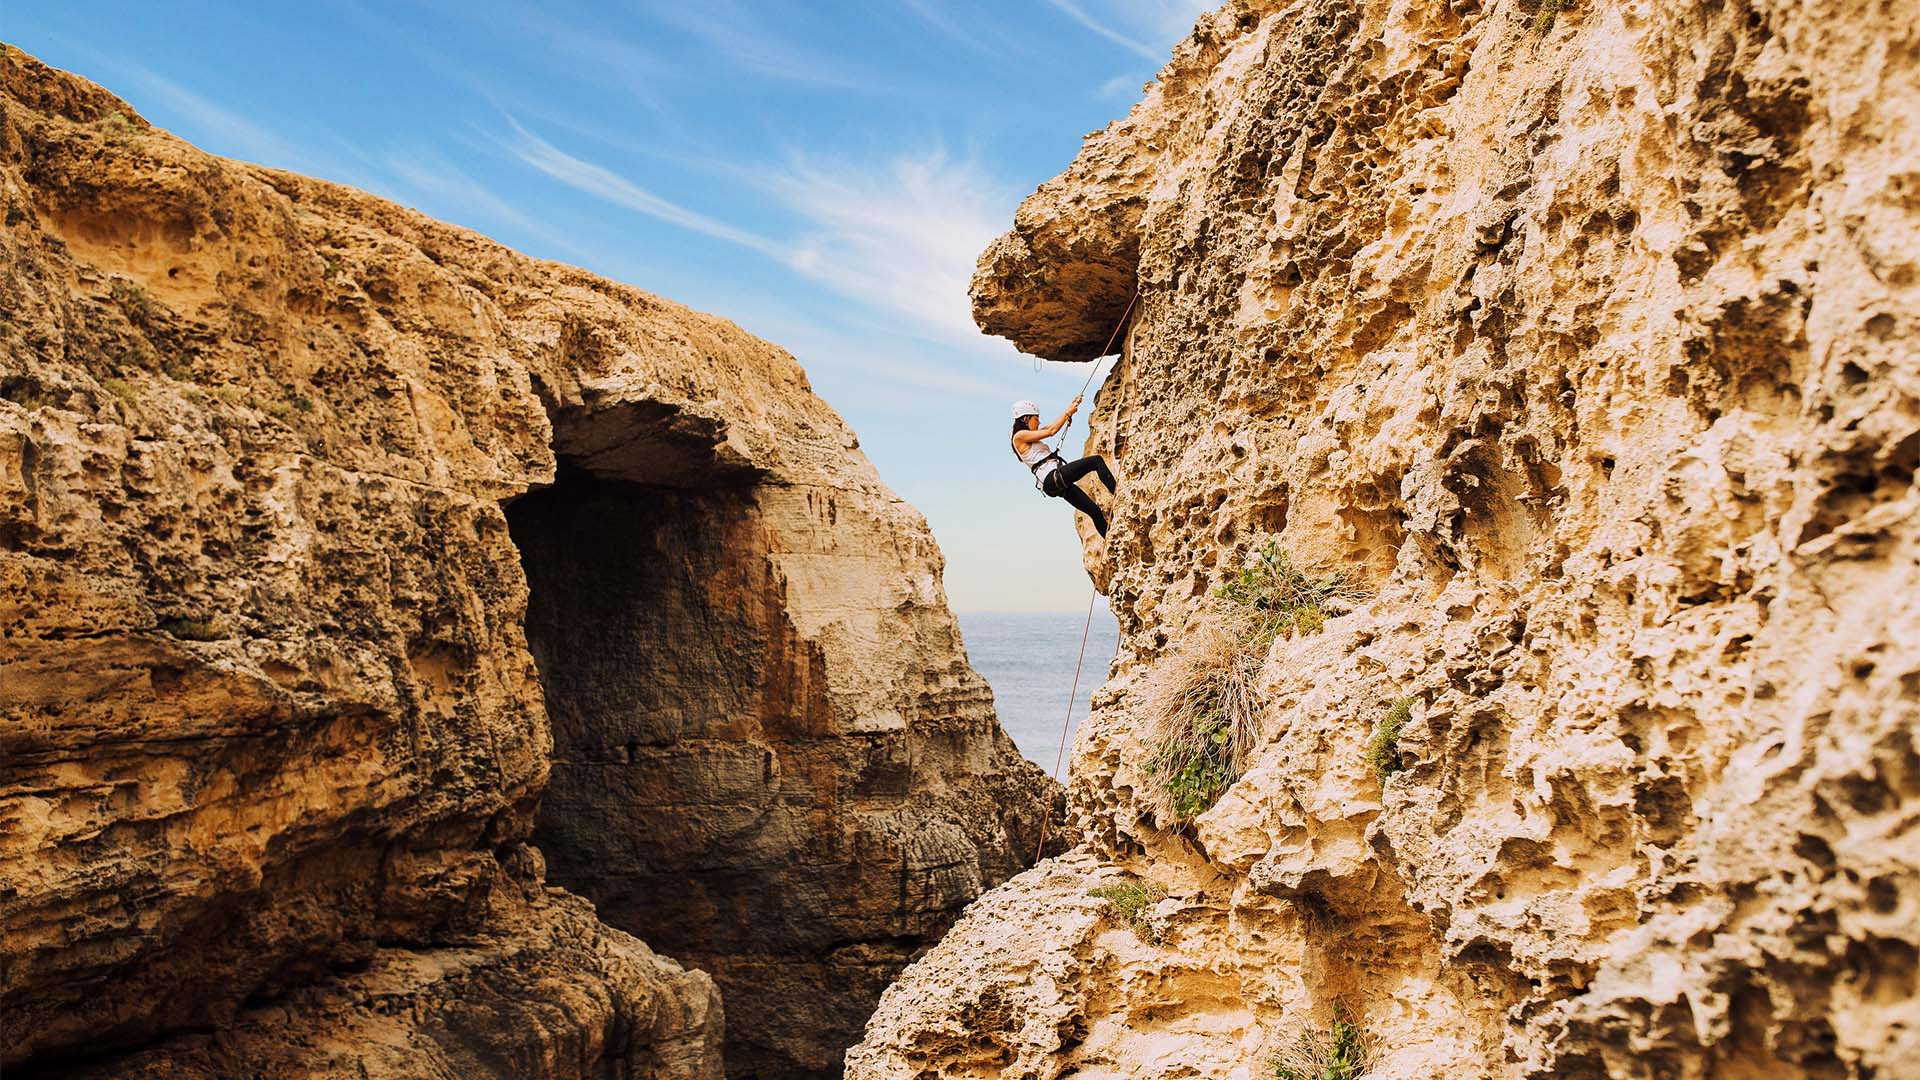 A young woman climbing the cliffs of Gozo, Malta